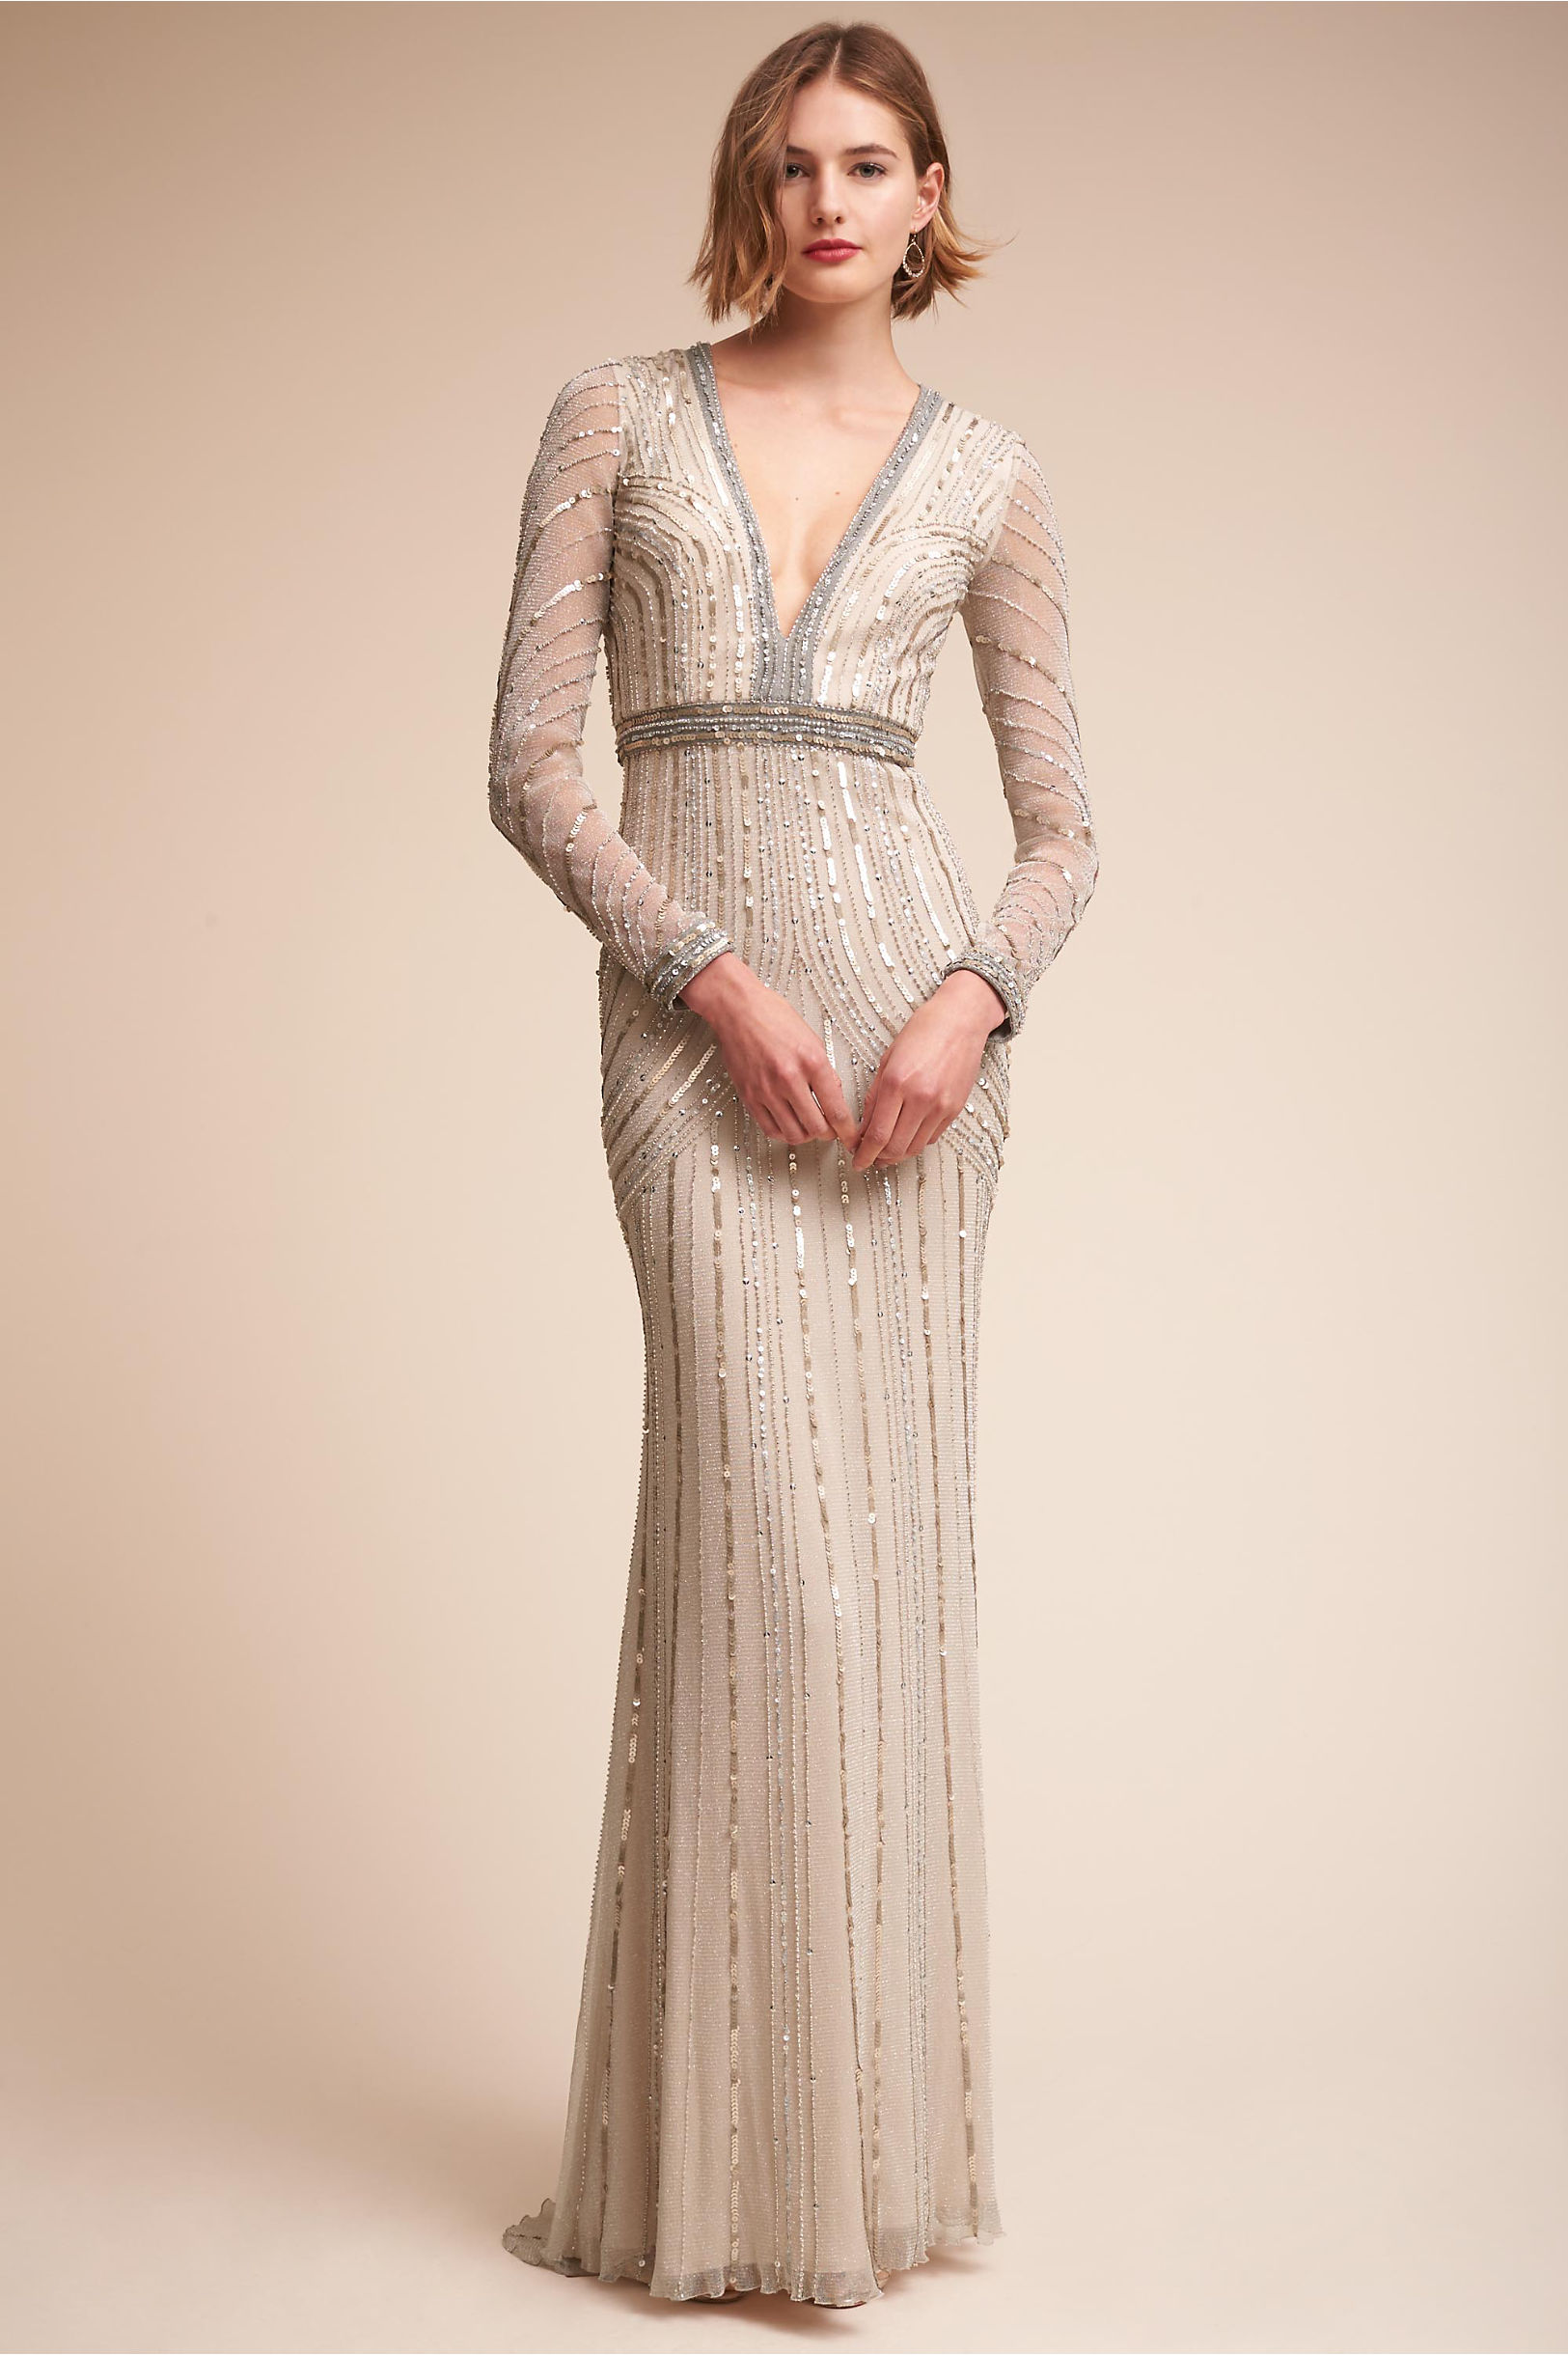 Carraway Gown in Sale | BHLDN